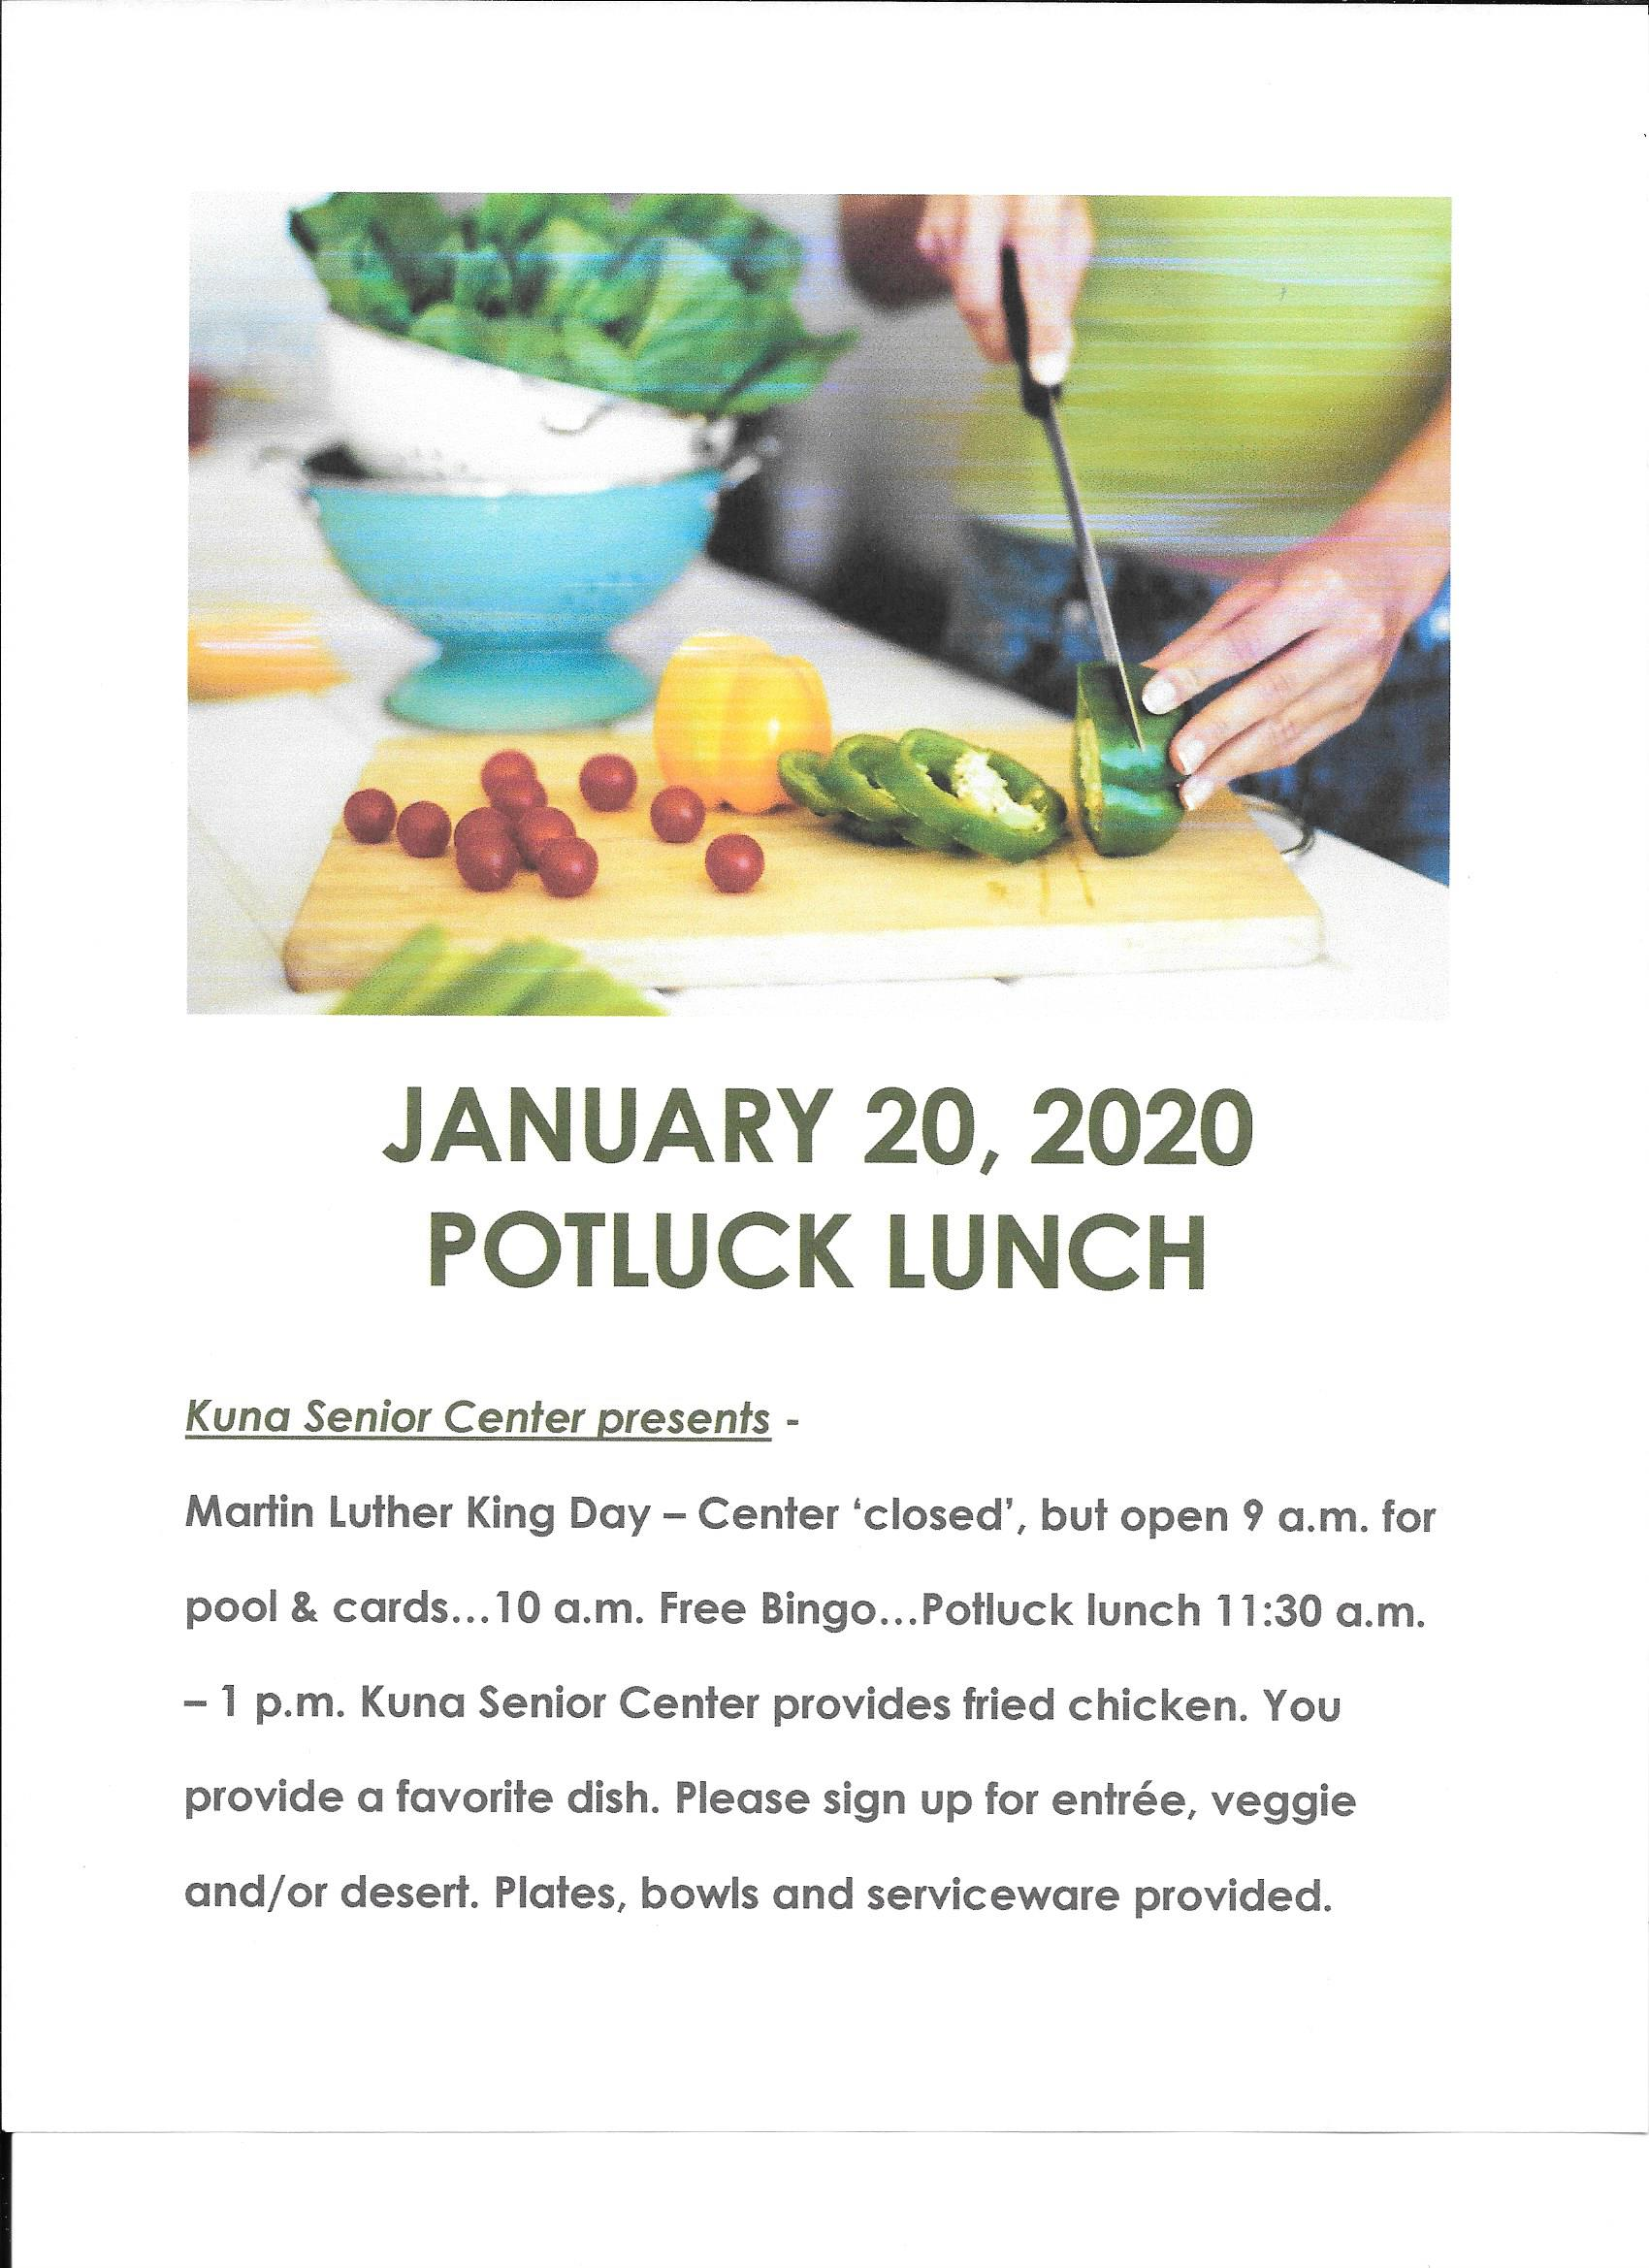 Kuna Senior Center Jan 20 Potluck 2020